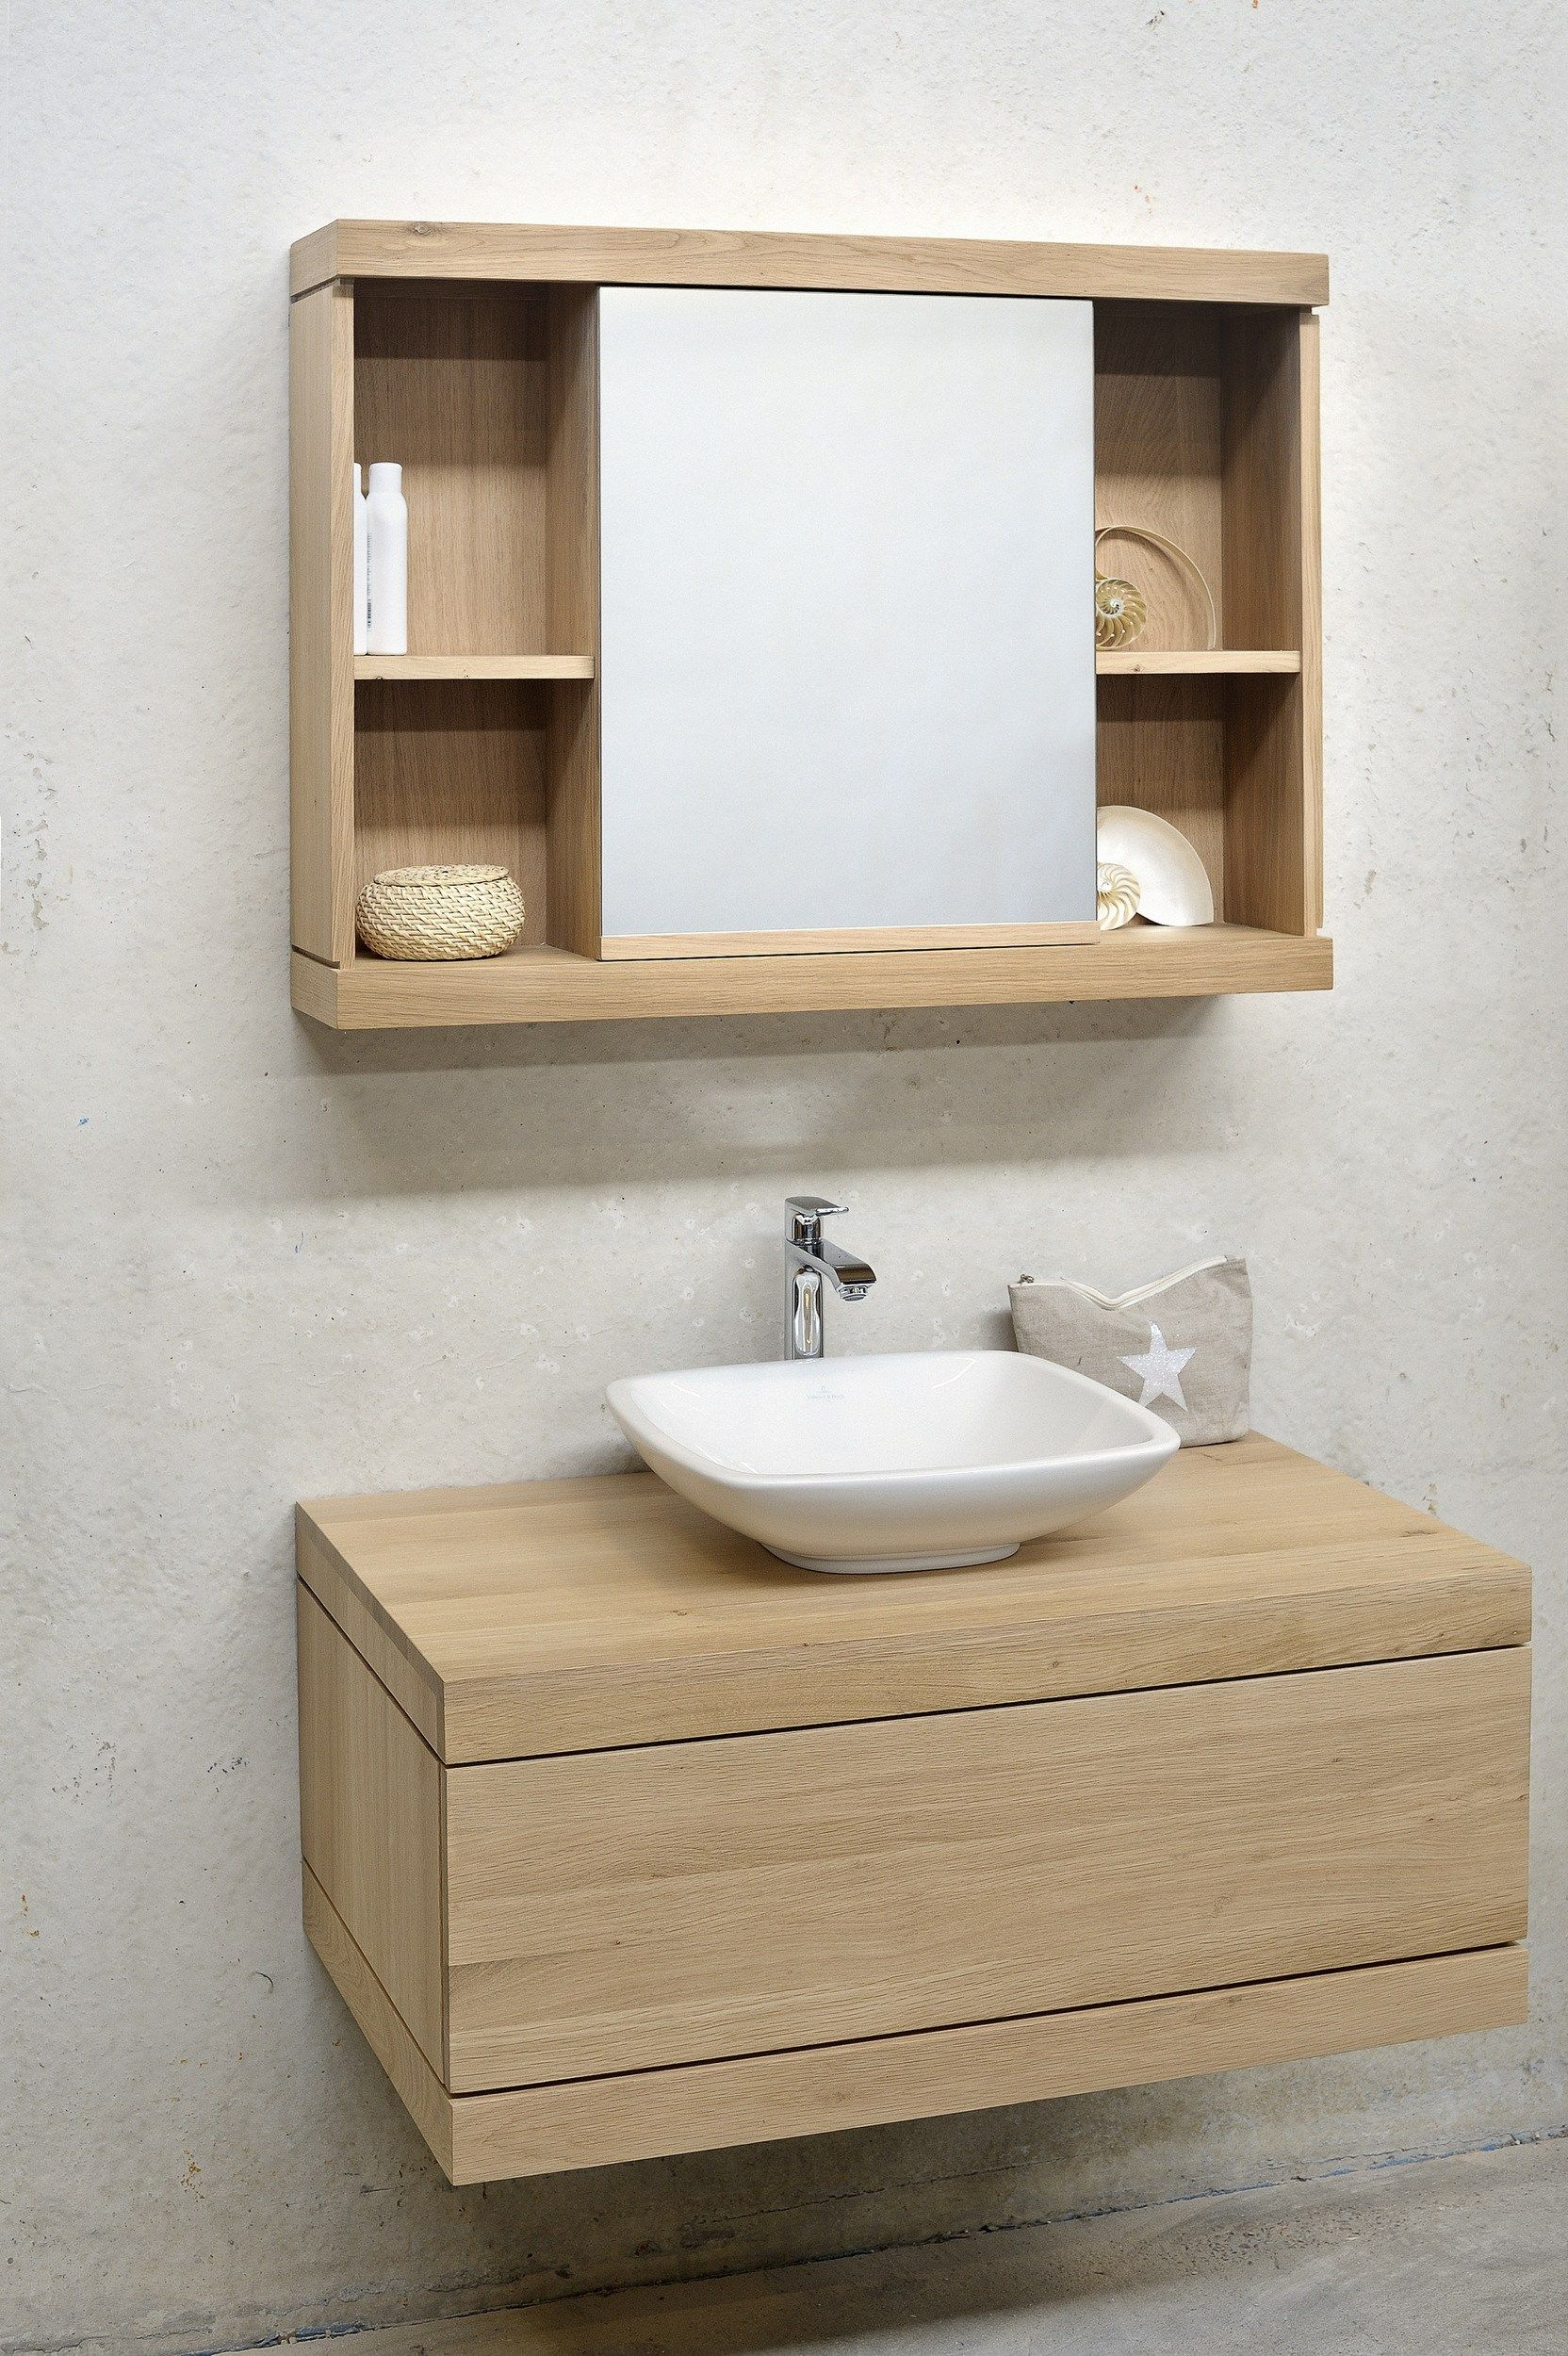 Oak Cadence Vanity Unit By Ethnicraft Wooden Bathroom Vanity Bathroom Vanity Units Washbasin Design